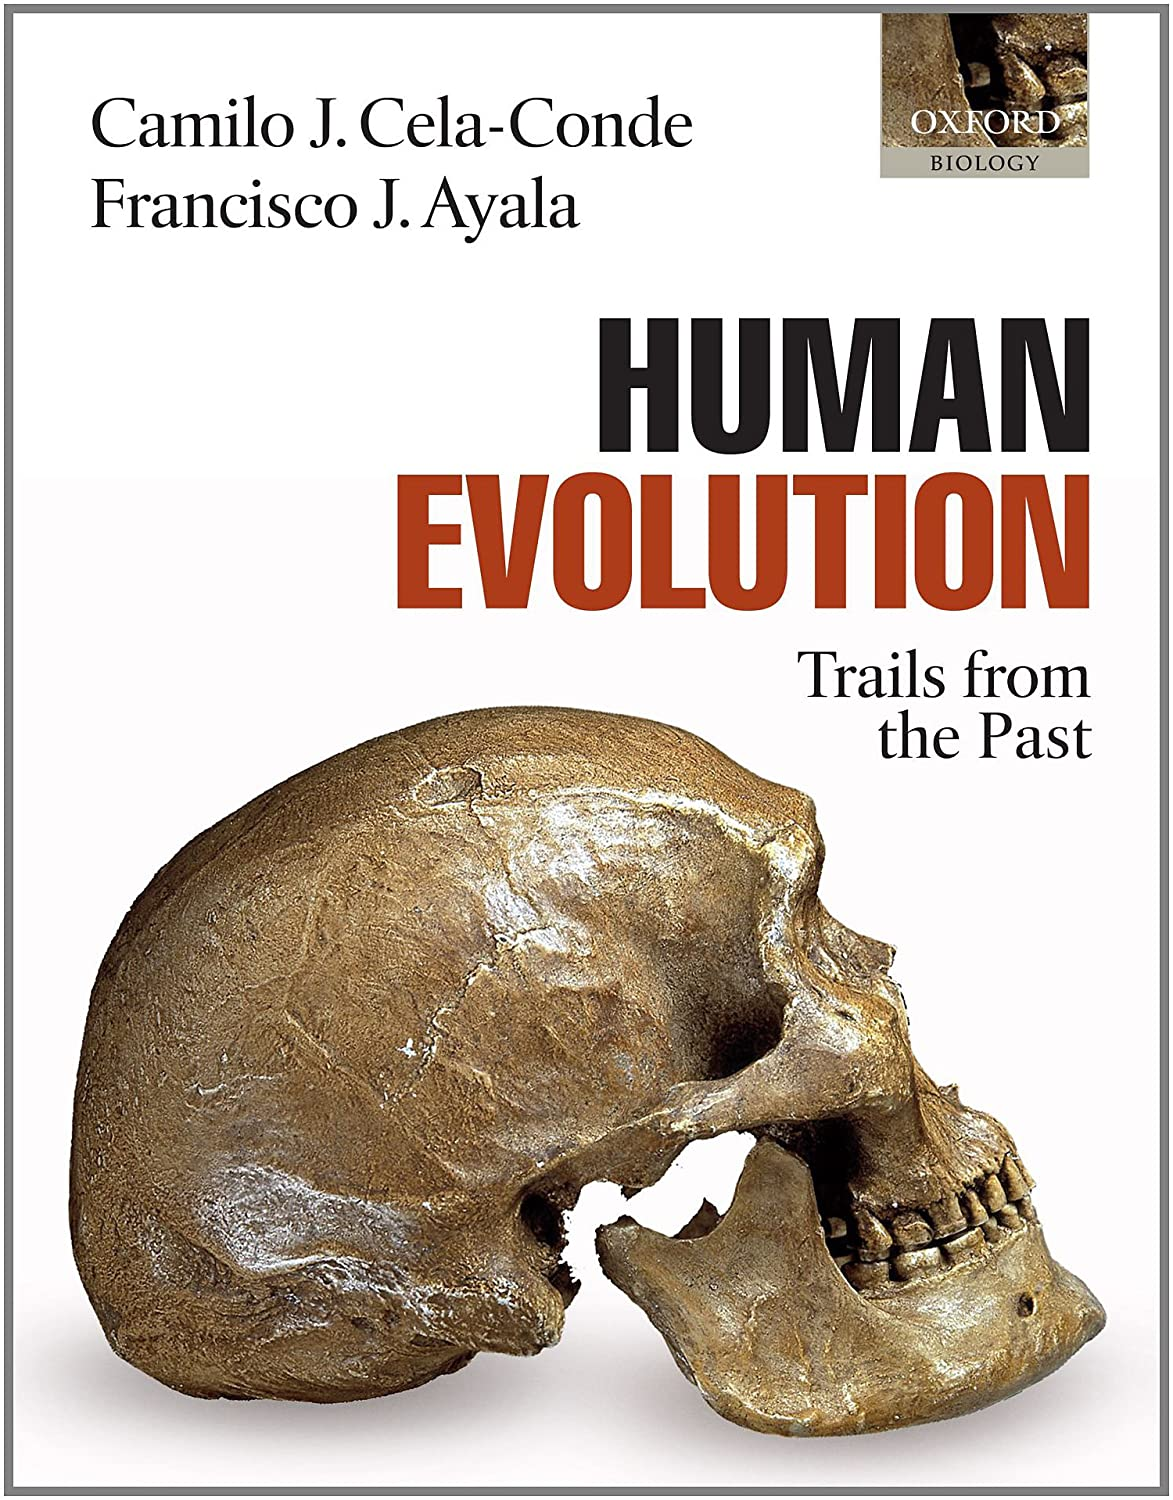 Human Evolution: Trails from the Past Camilo J. Cela-Conde and Francisco J. Ayala